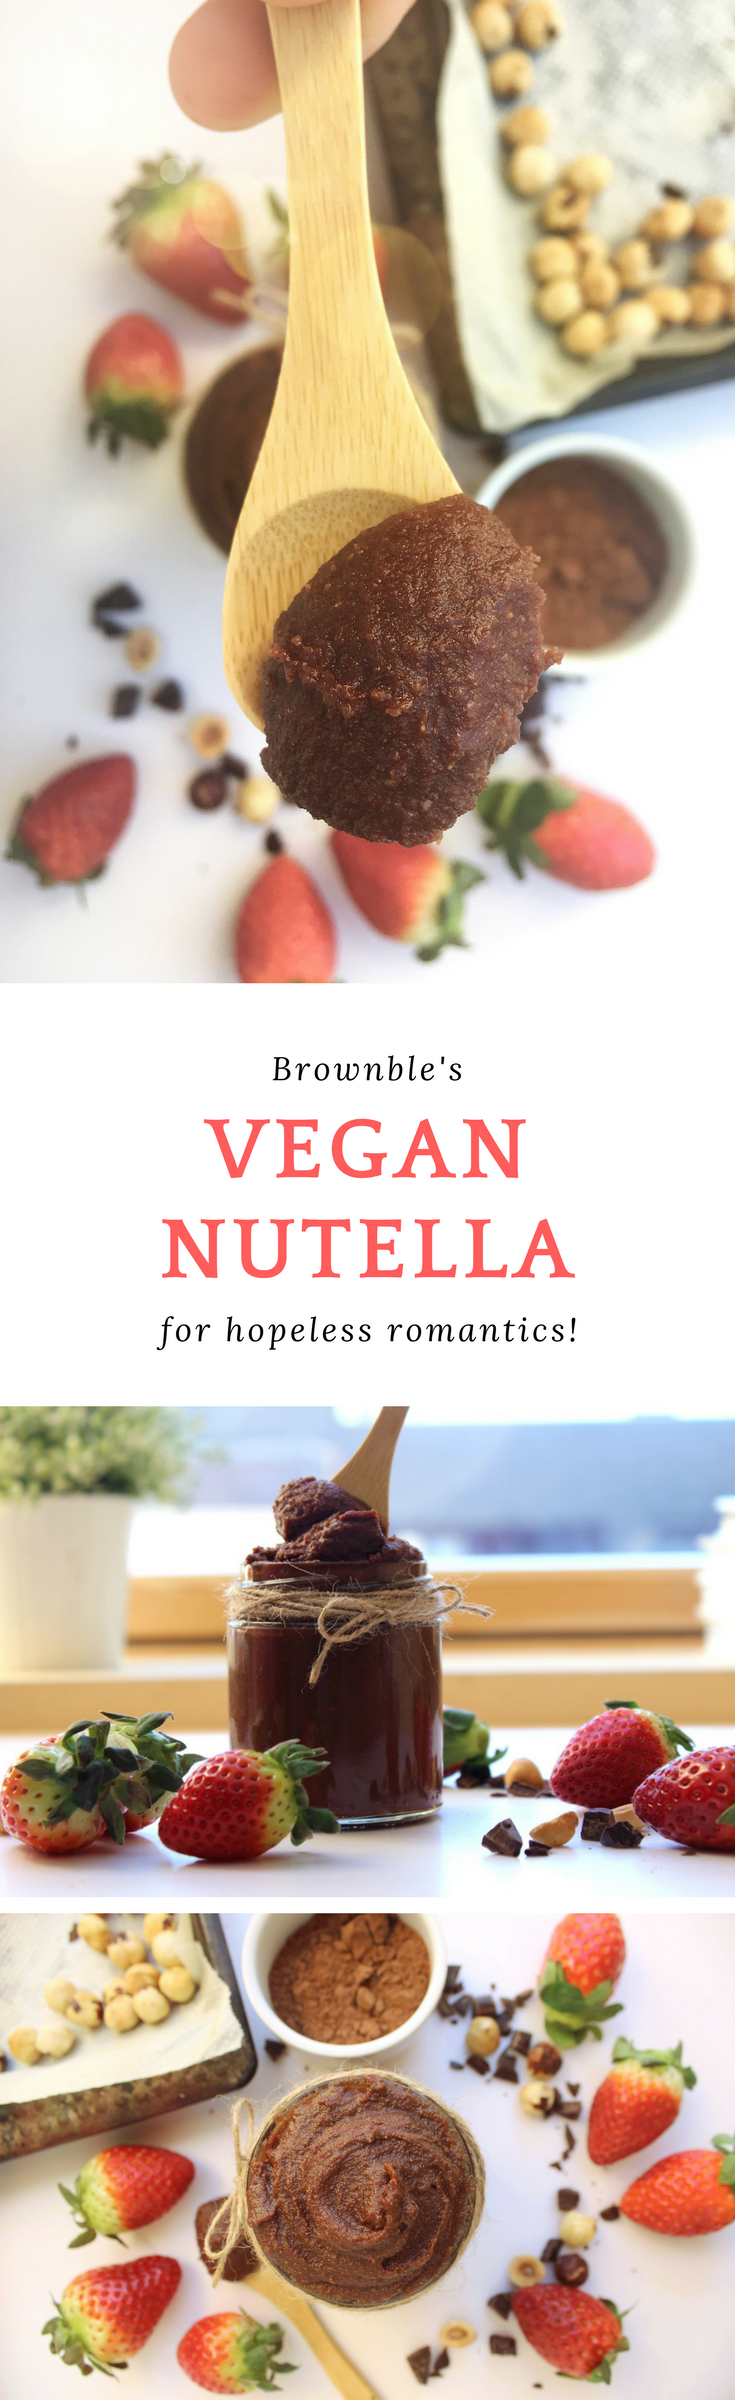 Vegan Nutella for Hopeless Romantics